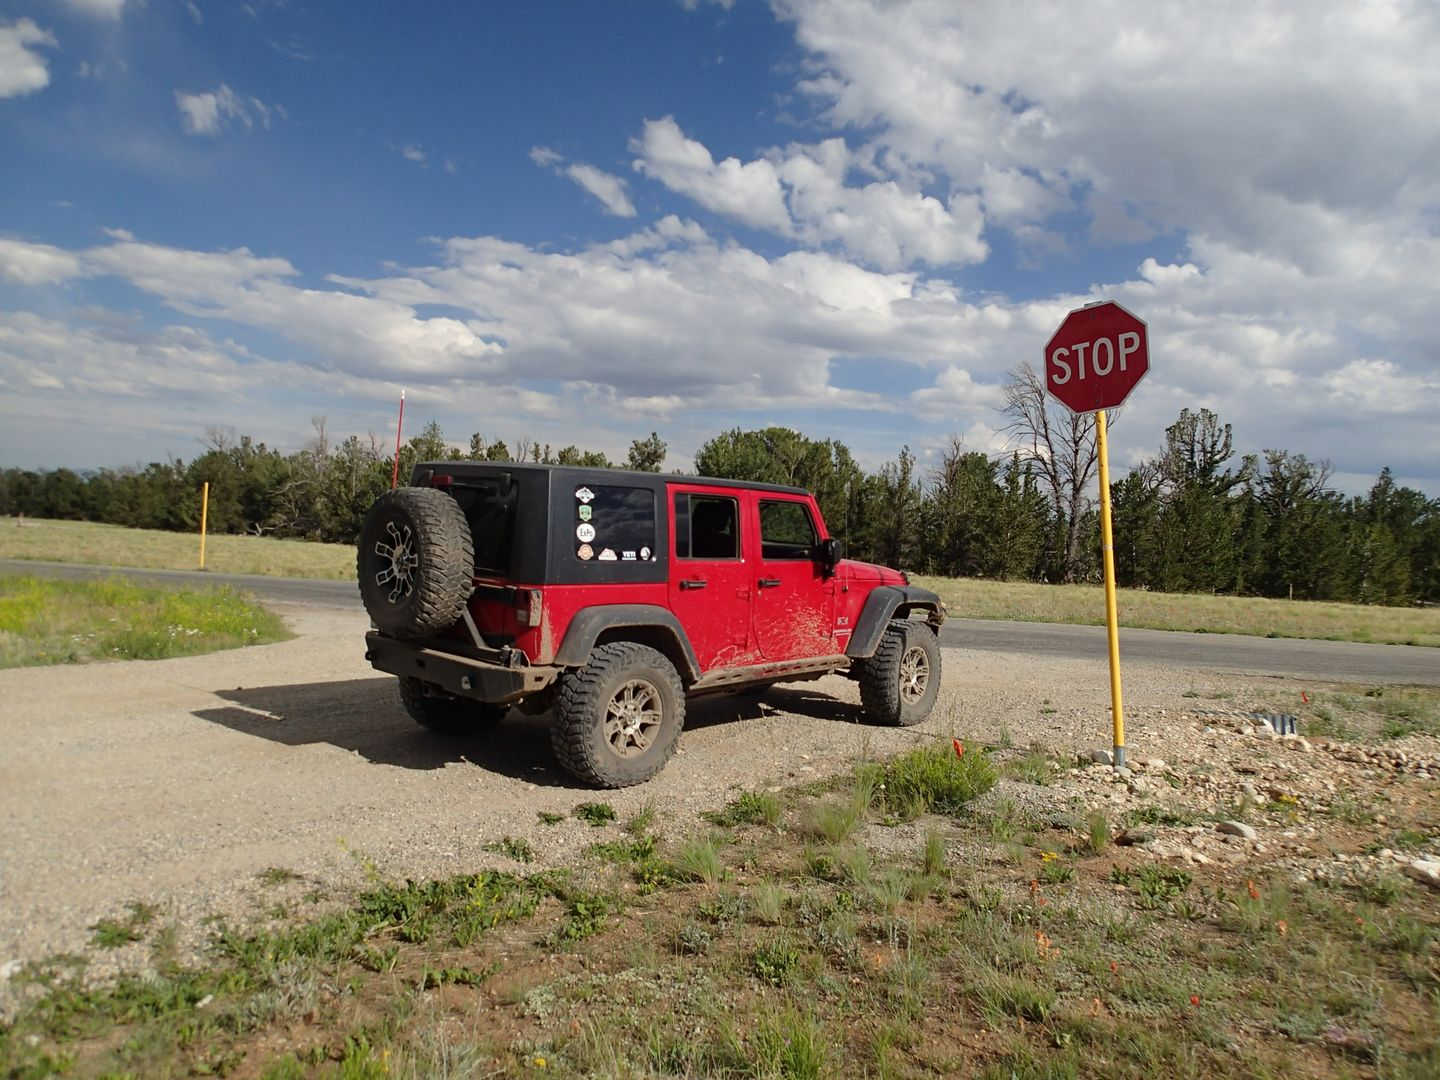 Brown's Pass  - Waypoint 9: Lower Trailhead/End at Intersection County Road 20